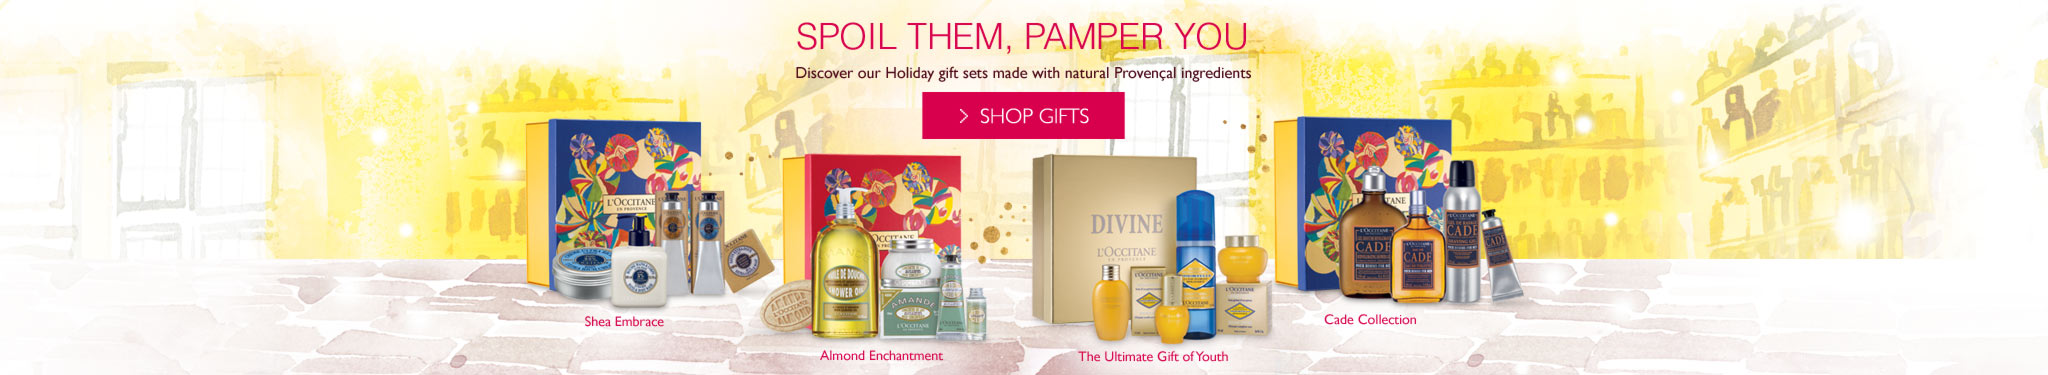 Spoil Them, Pamper Them